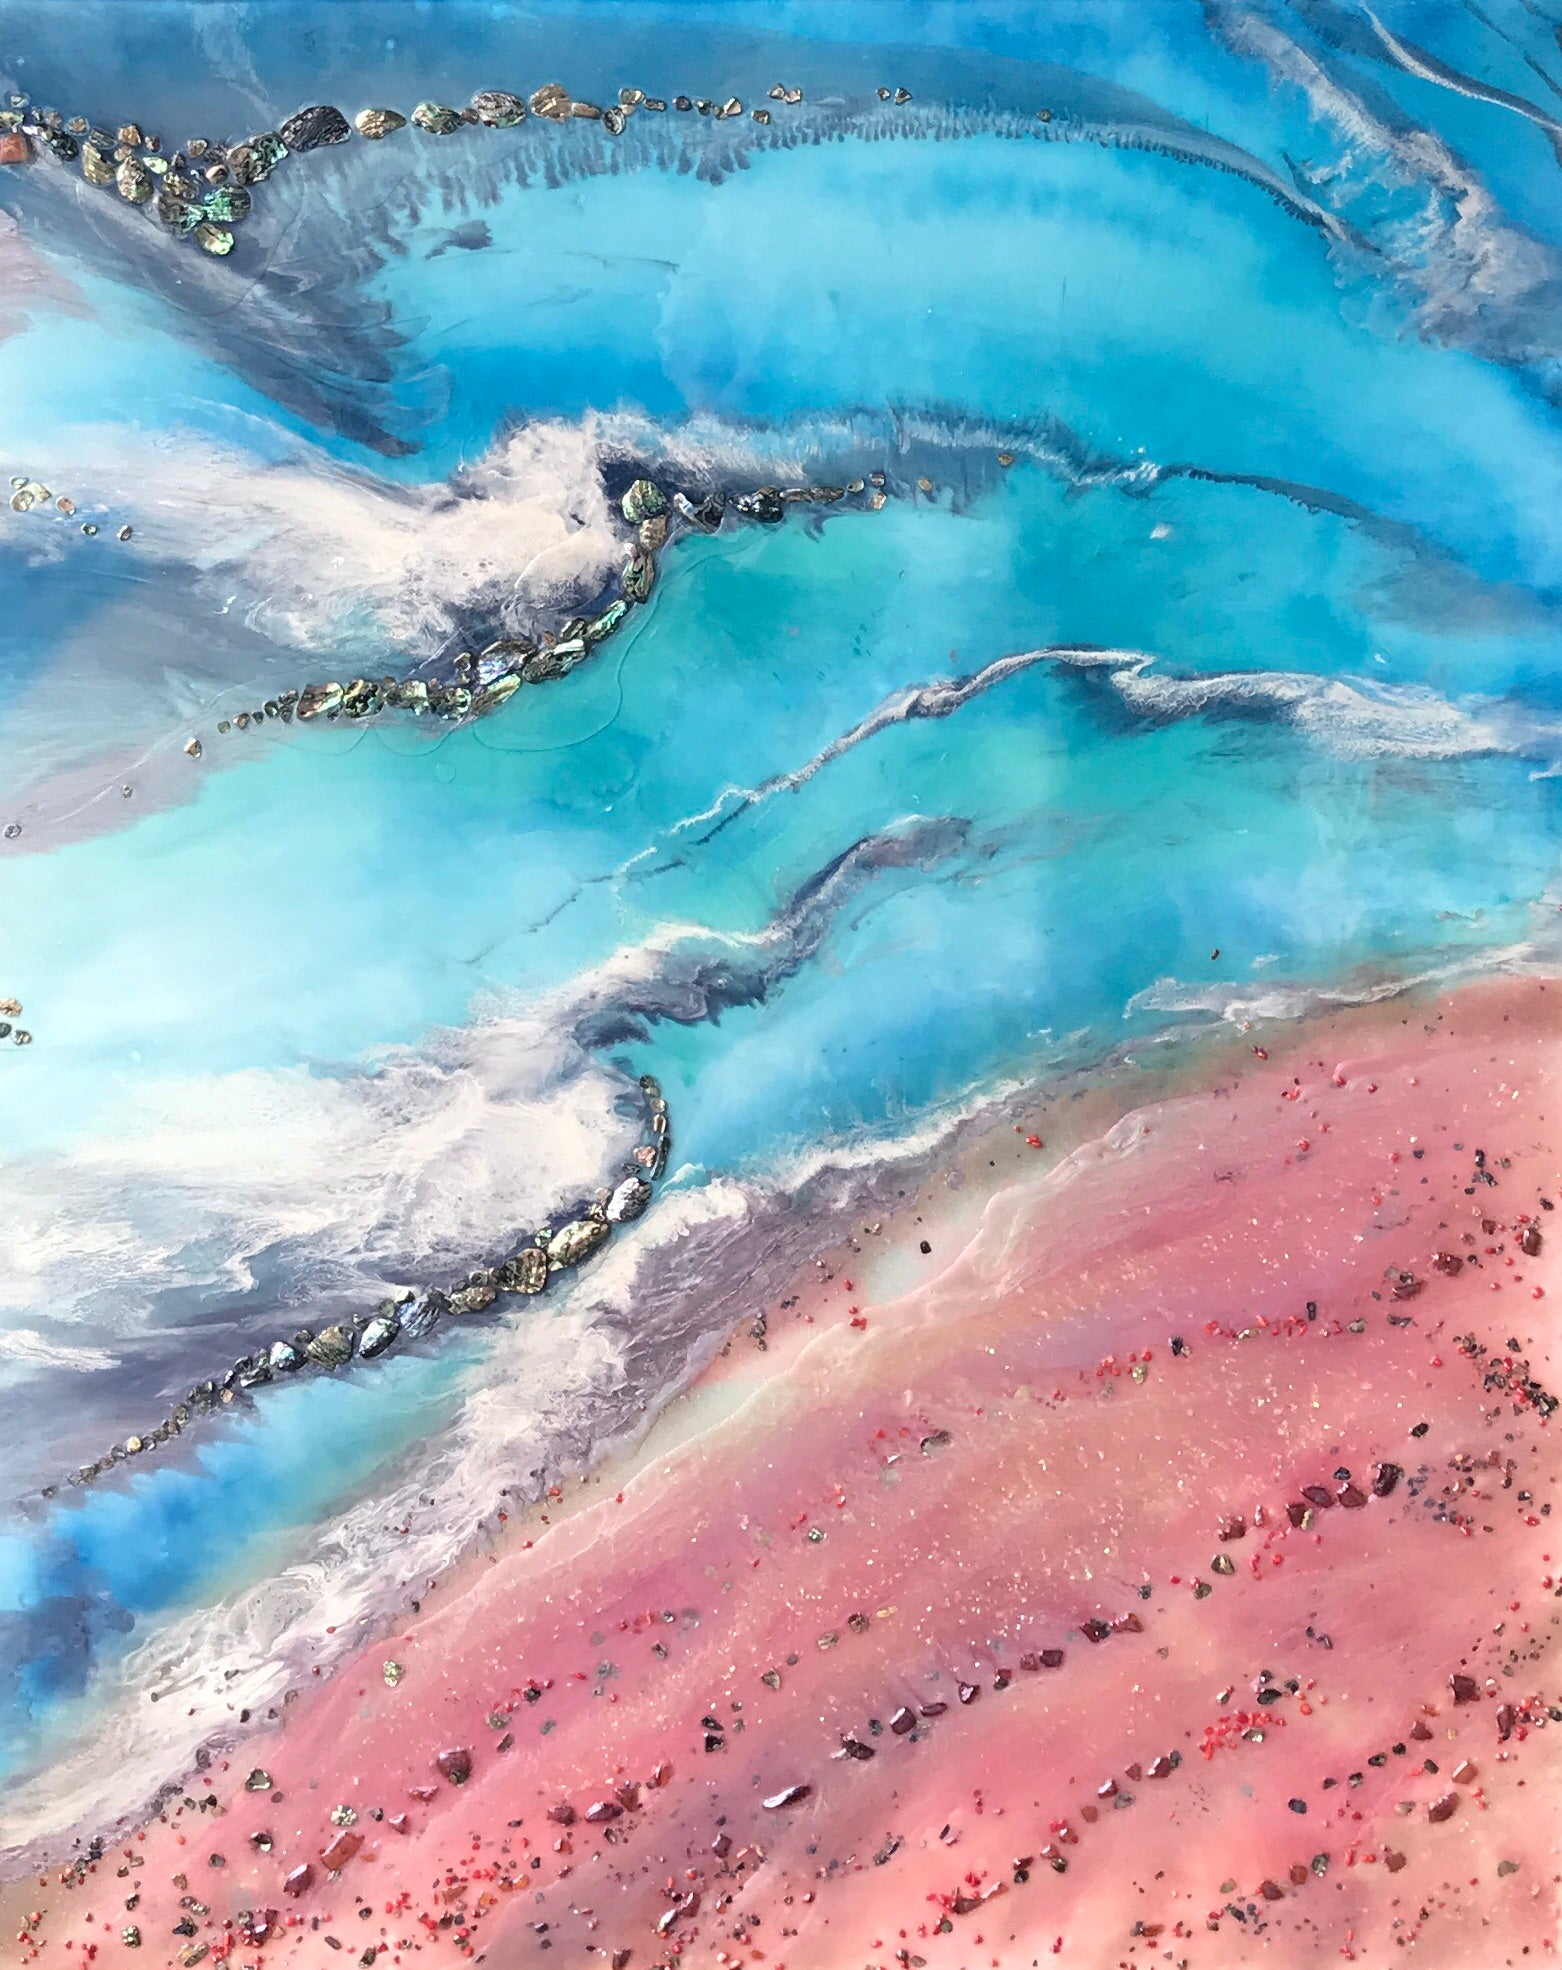 Teal and Pink Ocean Painting. Abstract Seascape Resin Artwork 2 Azure Coastline. Ocean. Original with Abalone Shells Coral 120x150cm.